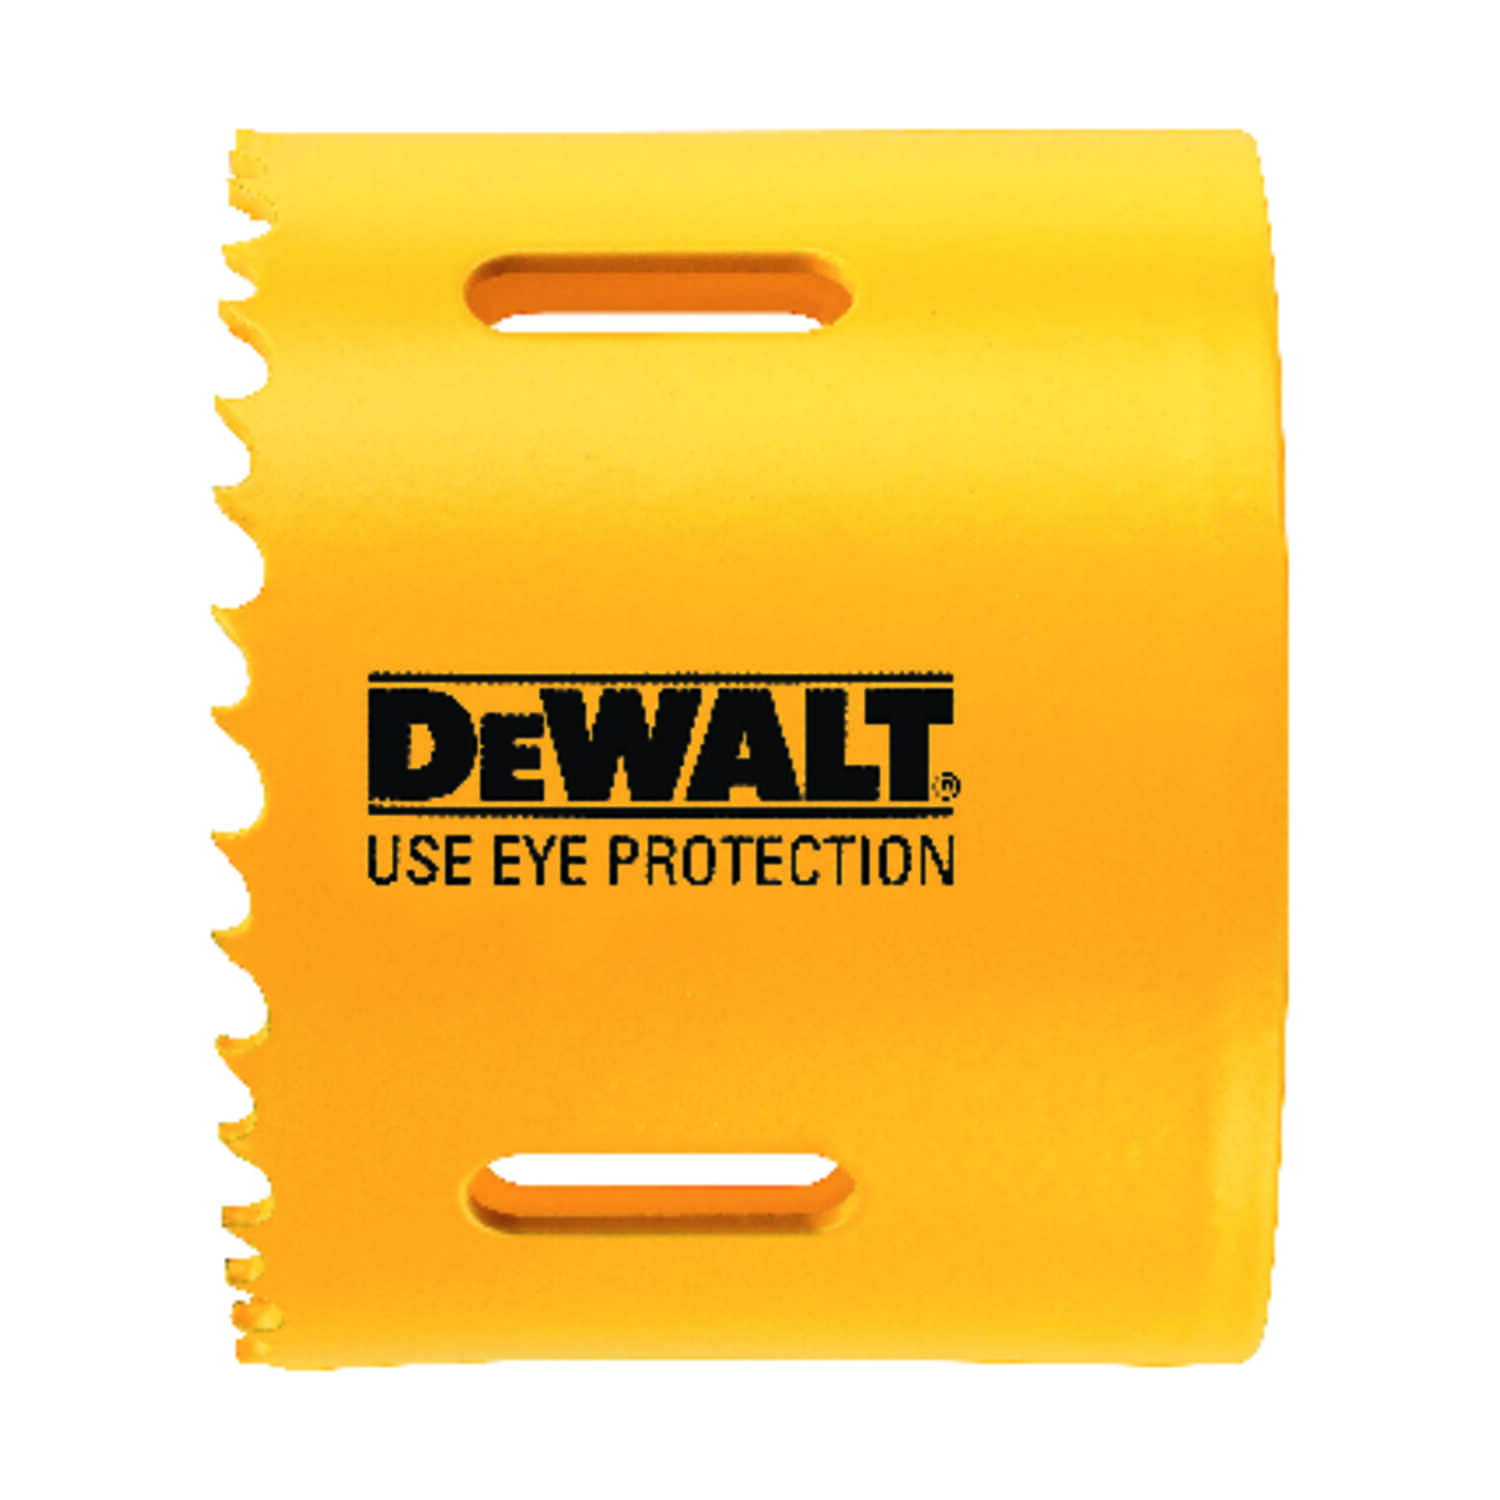 DeWalt  2-1/2 in. Dia. x 1.75 in. L Bi-Metal  Hole Saw  1/4 in. 1 pc.